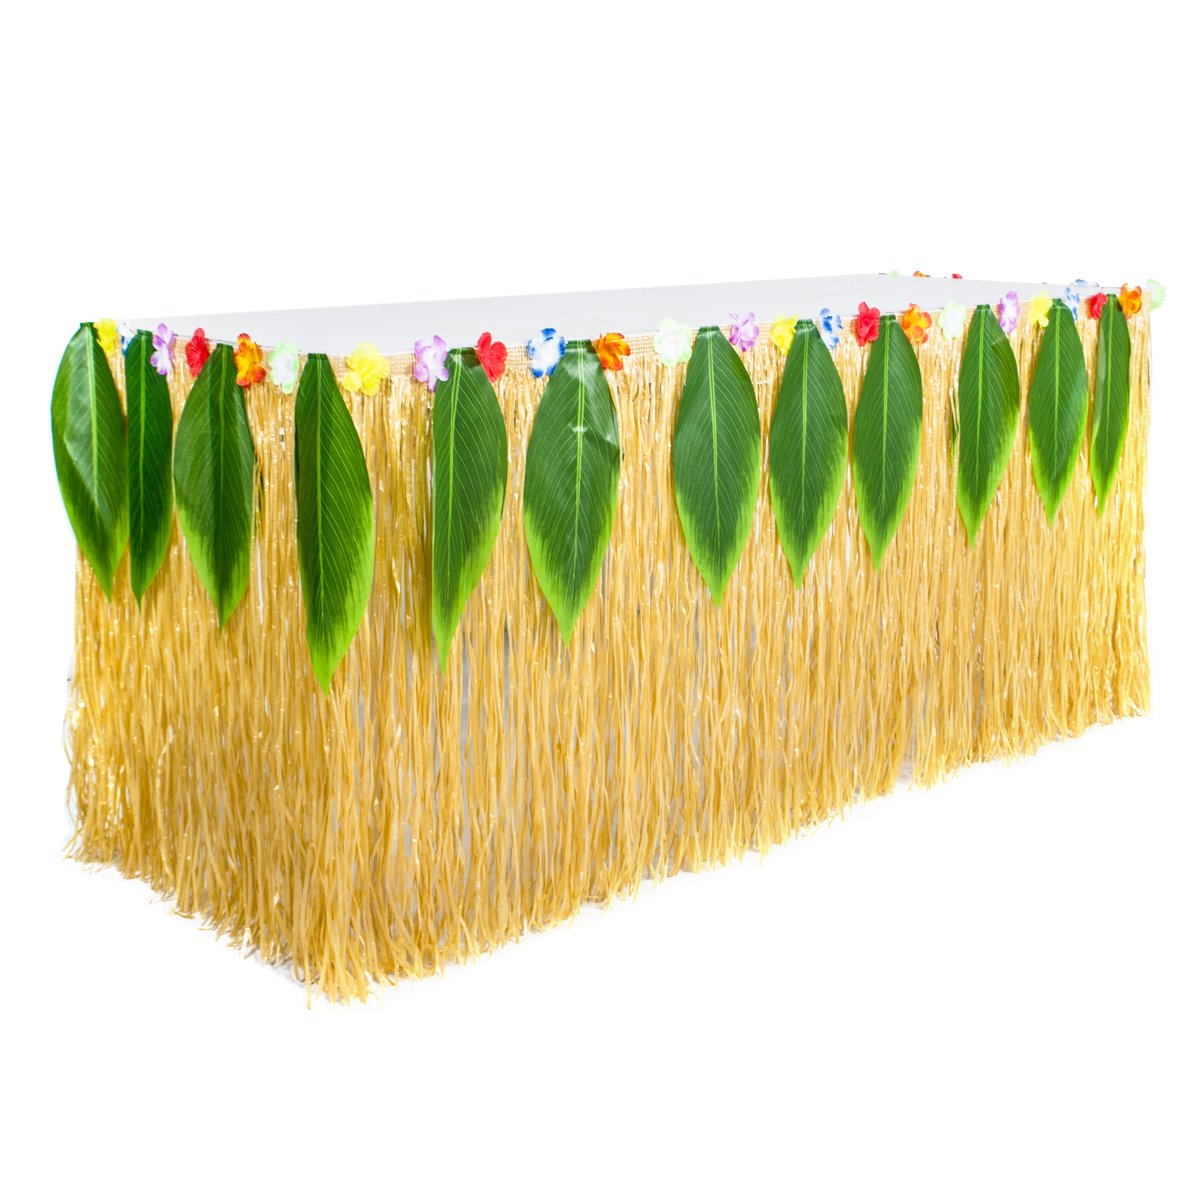 Hawaiian Luau Table Skirt Grass Skirt for Table with Luau Leaf and Hula Hibiscus Flower for Luau Party Decorations Supplies,Moana Party Supplies,Tropical Party Decorations(9ft Raffia Table Skirt) by Suppromo